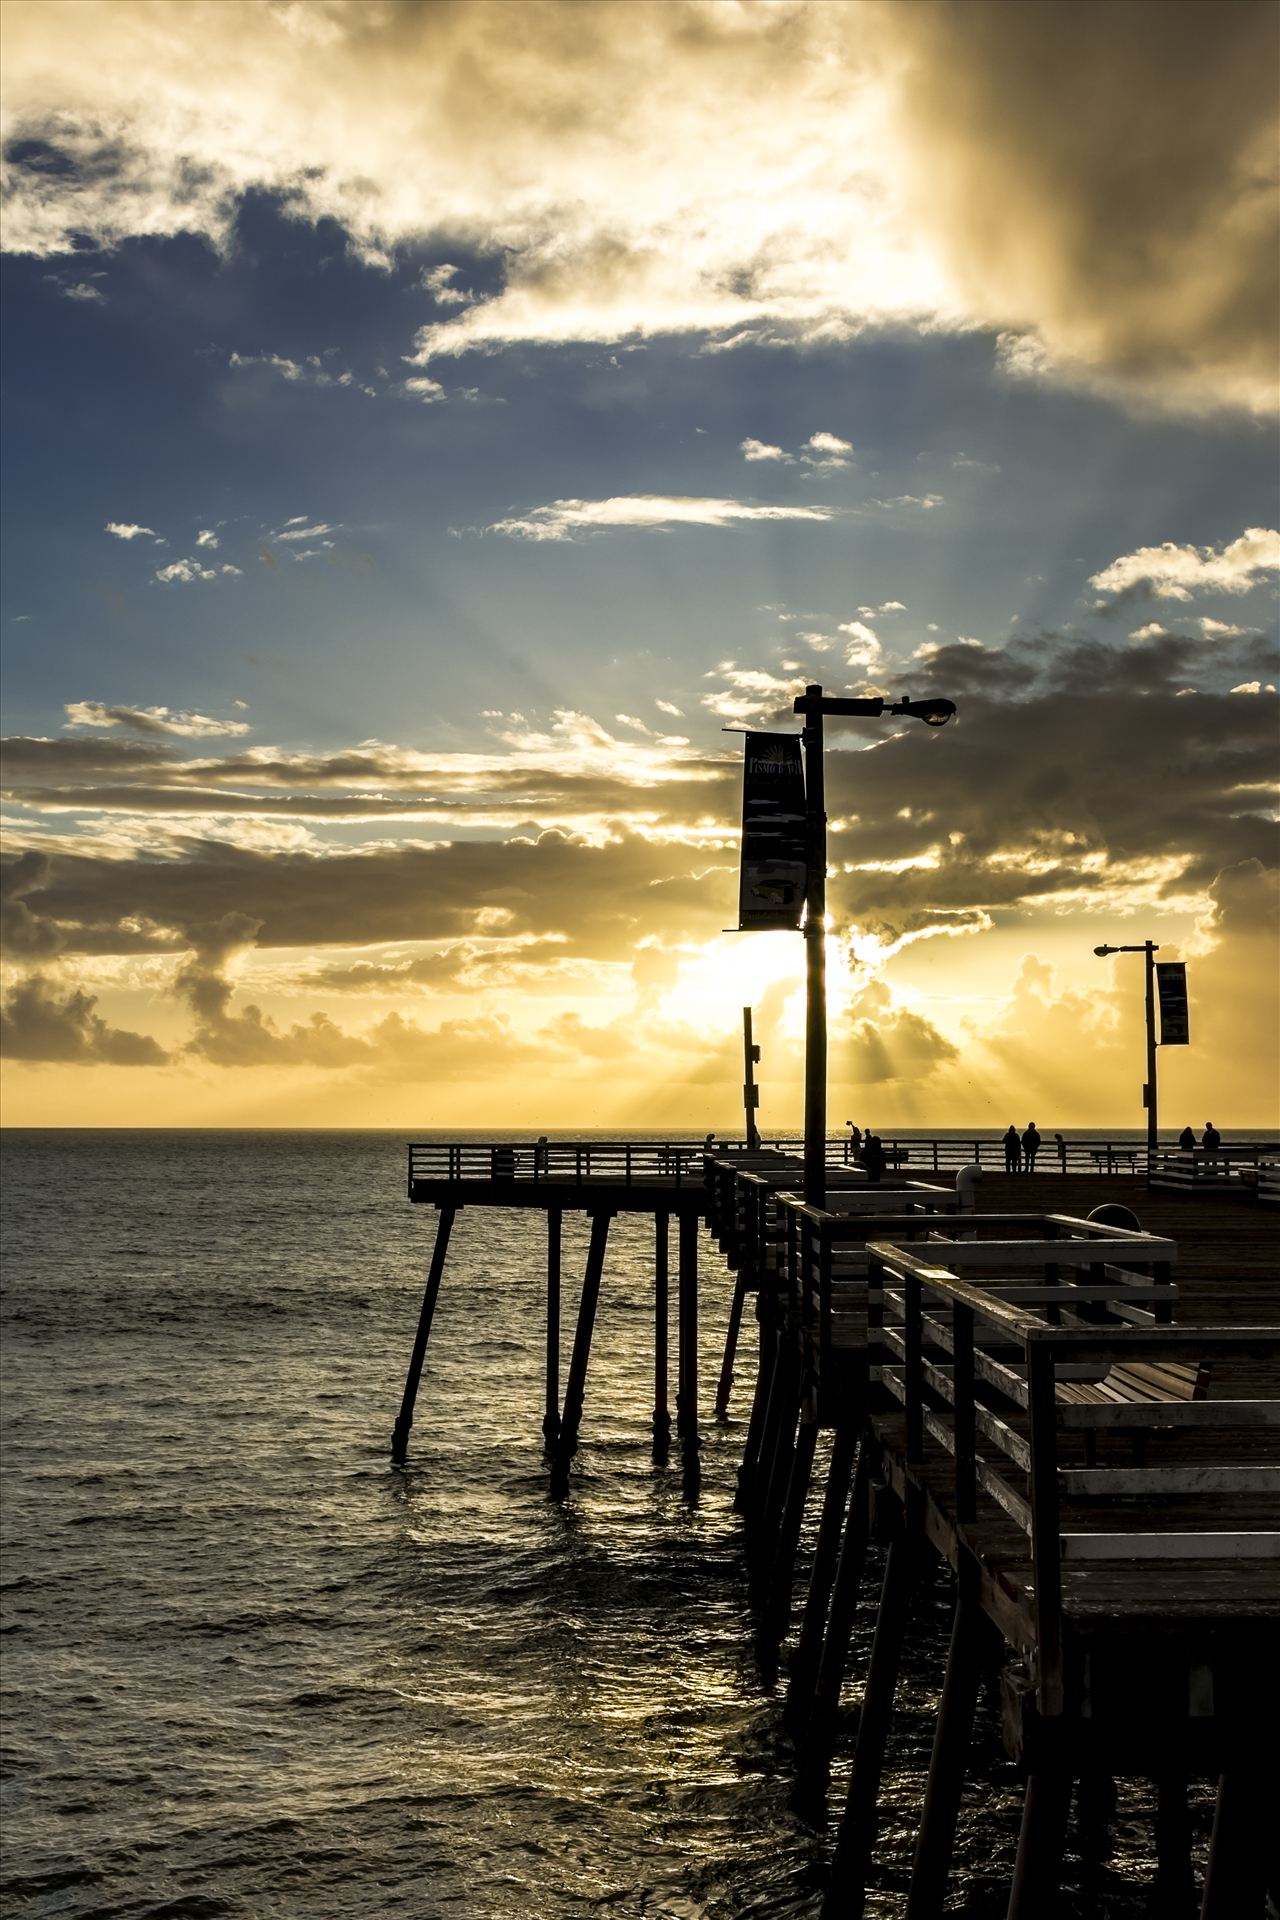 Pismo Pier Sunrays.jpg - Sunset sun rays say good evening to Pismo Beach pier by Sarah Williams